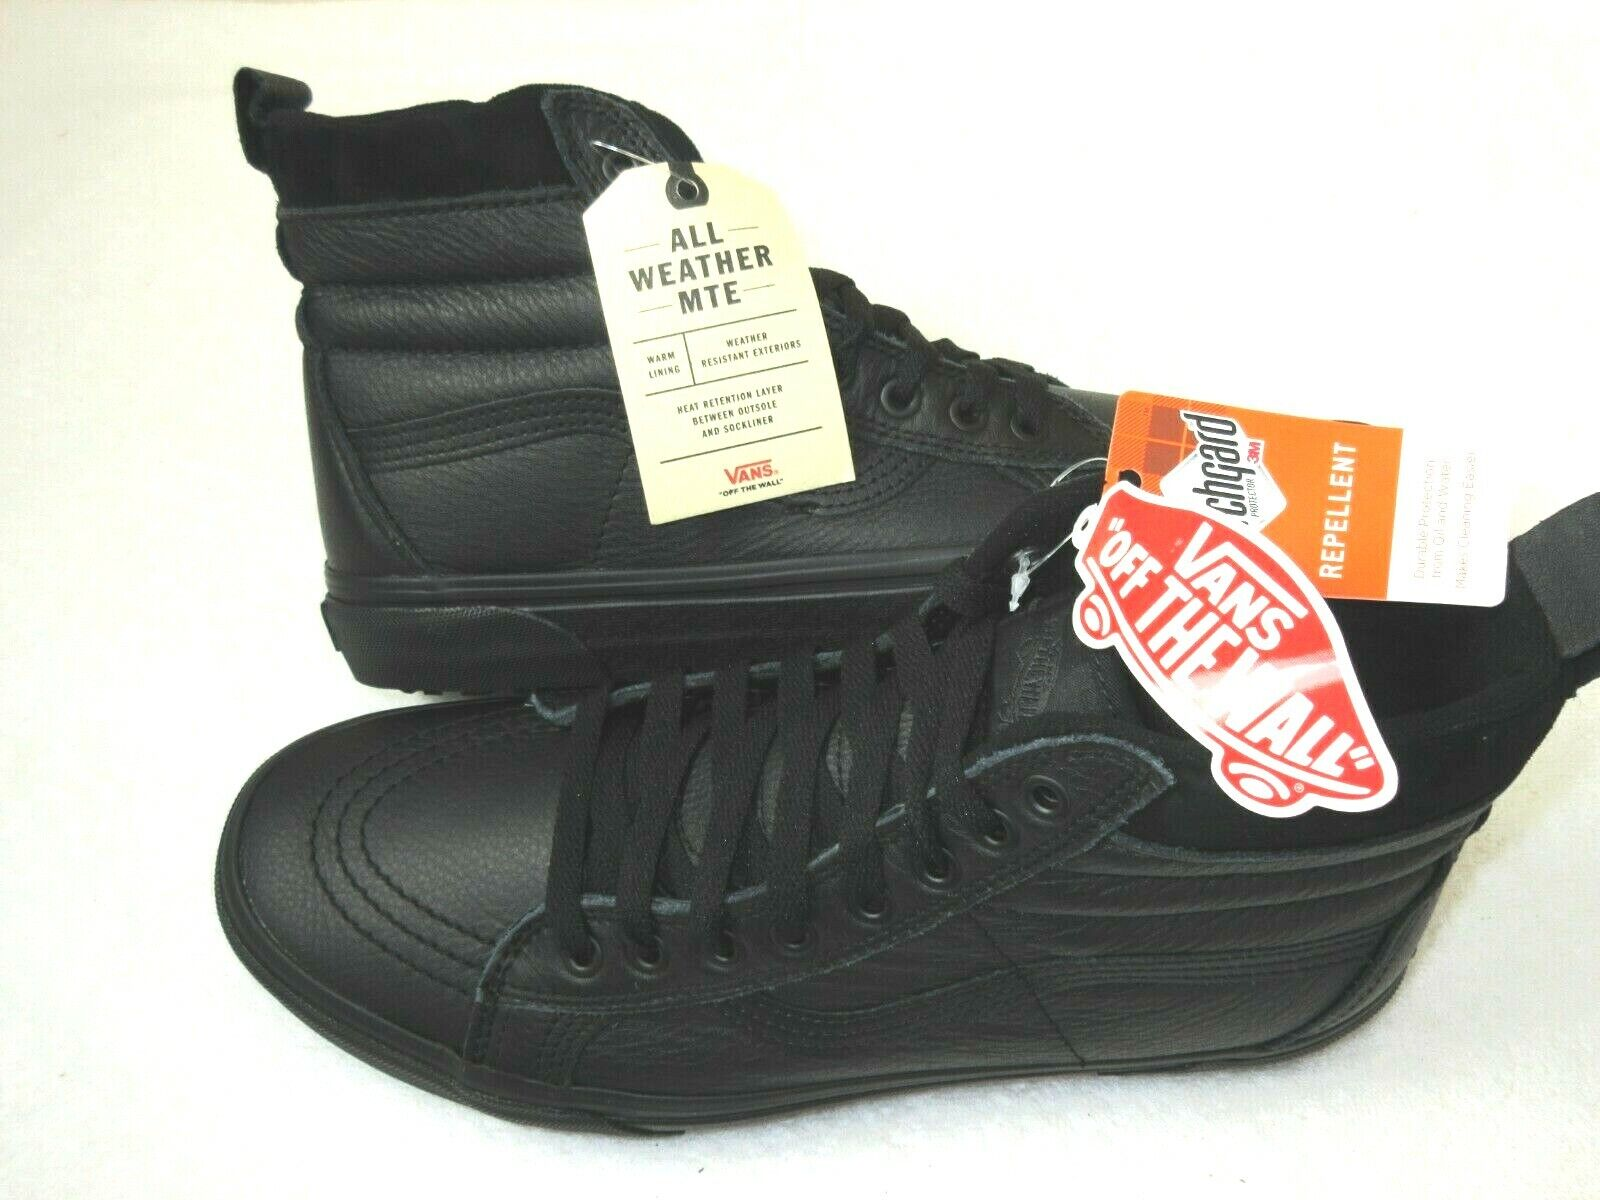 vans sk8 hi mte vn 0xh4jub black camo mens us size 13 uk 12 for sale online ebay ebay